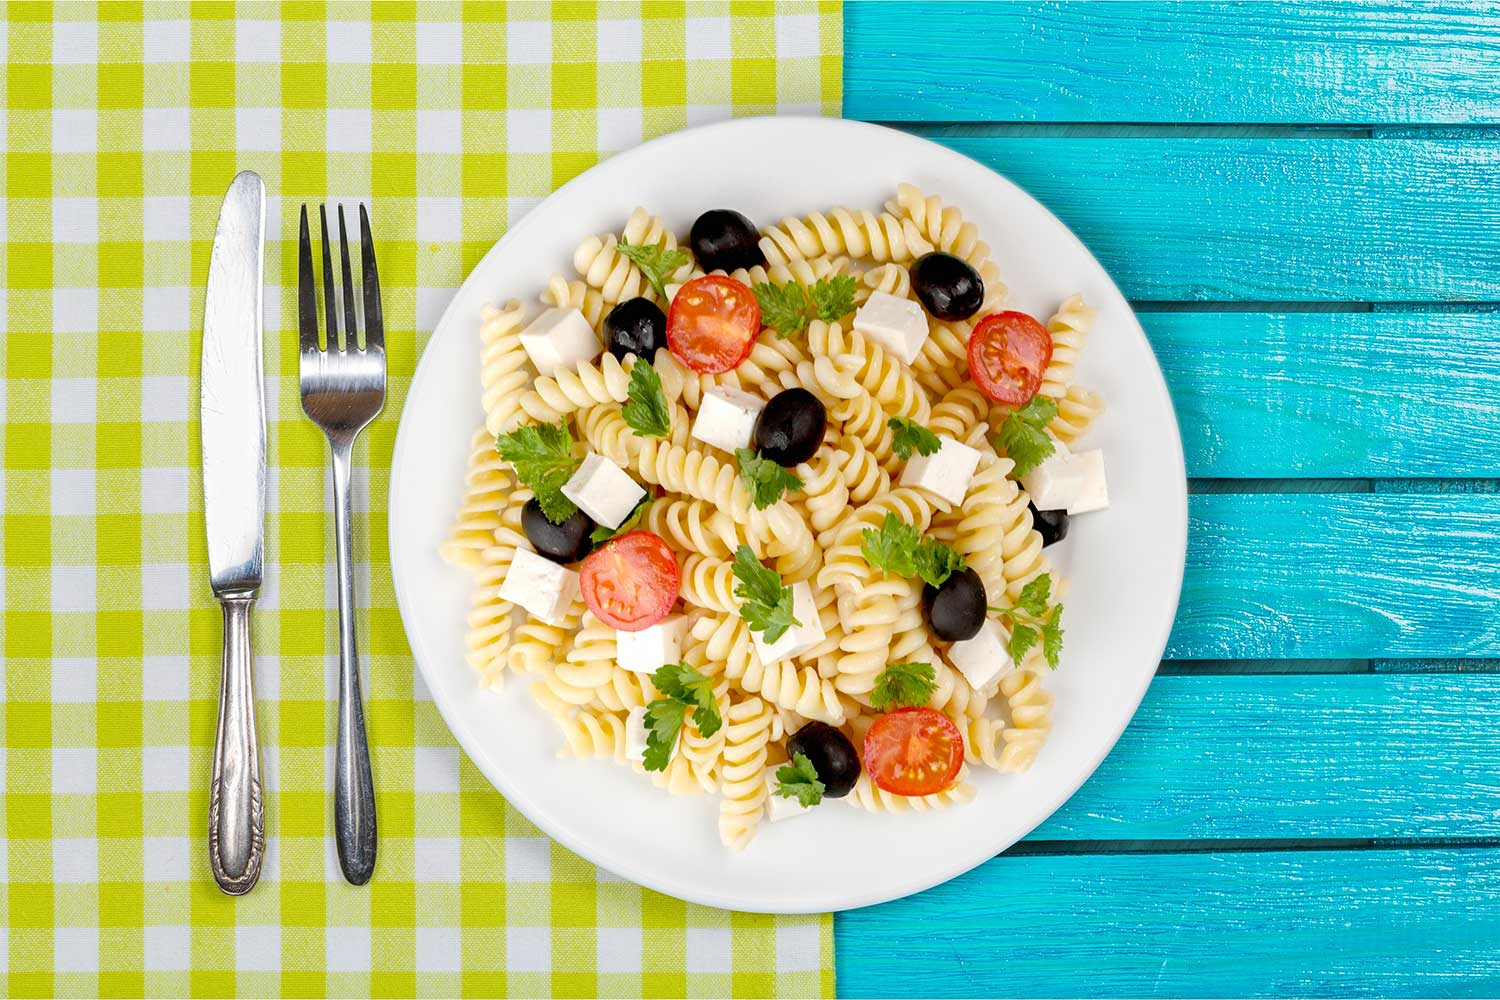 pasta salad on a blue and lime green picnic table